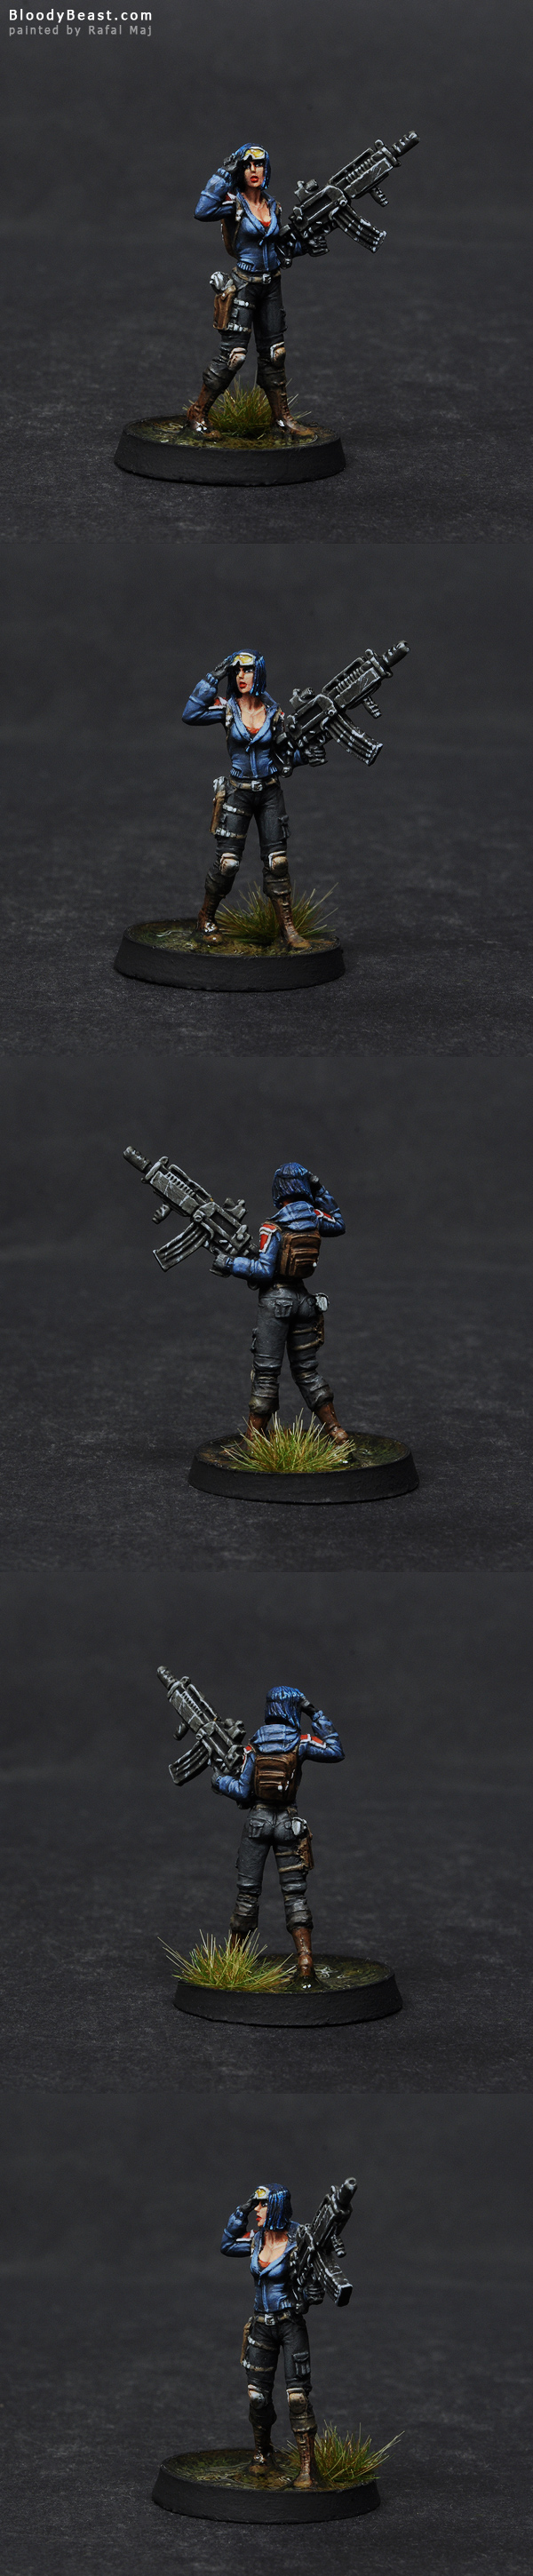 Ariadna Metros Rifle painted by Rafal Maj (BloodyBeast.com)